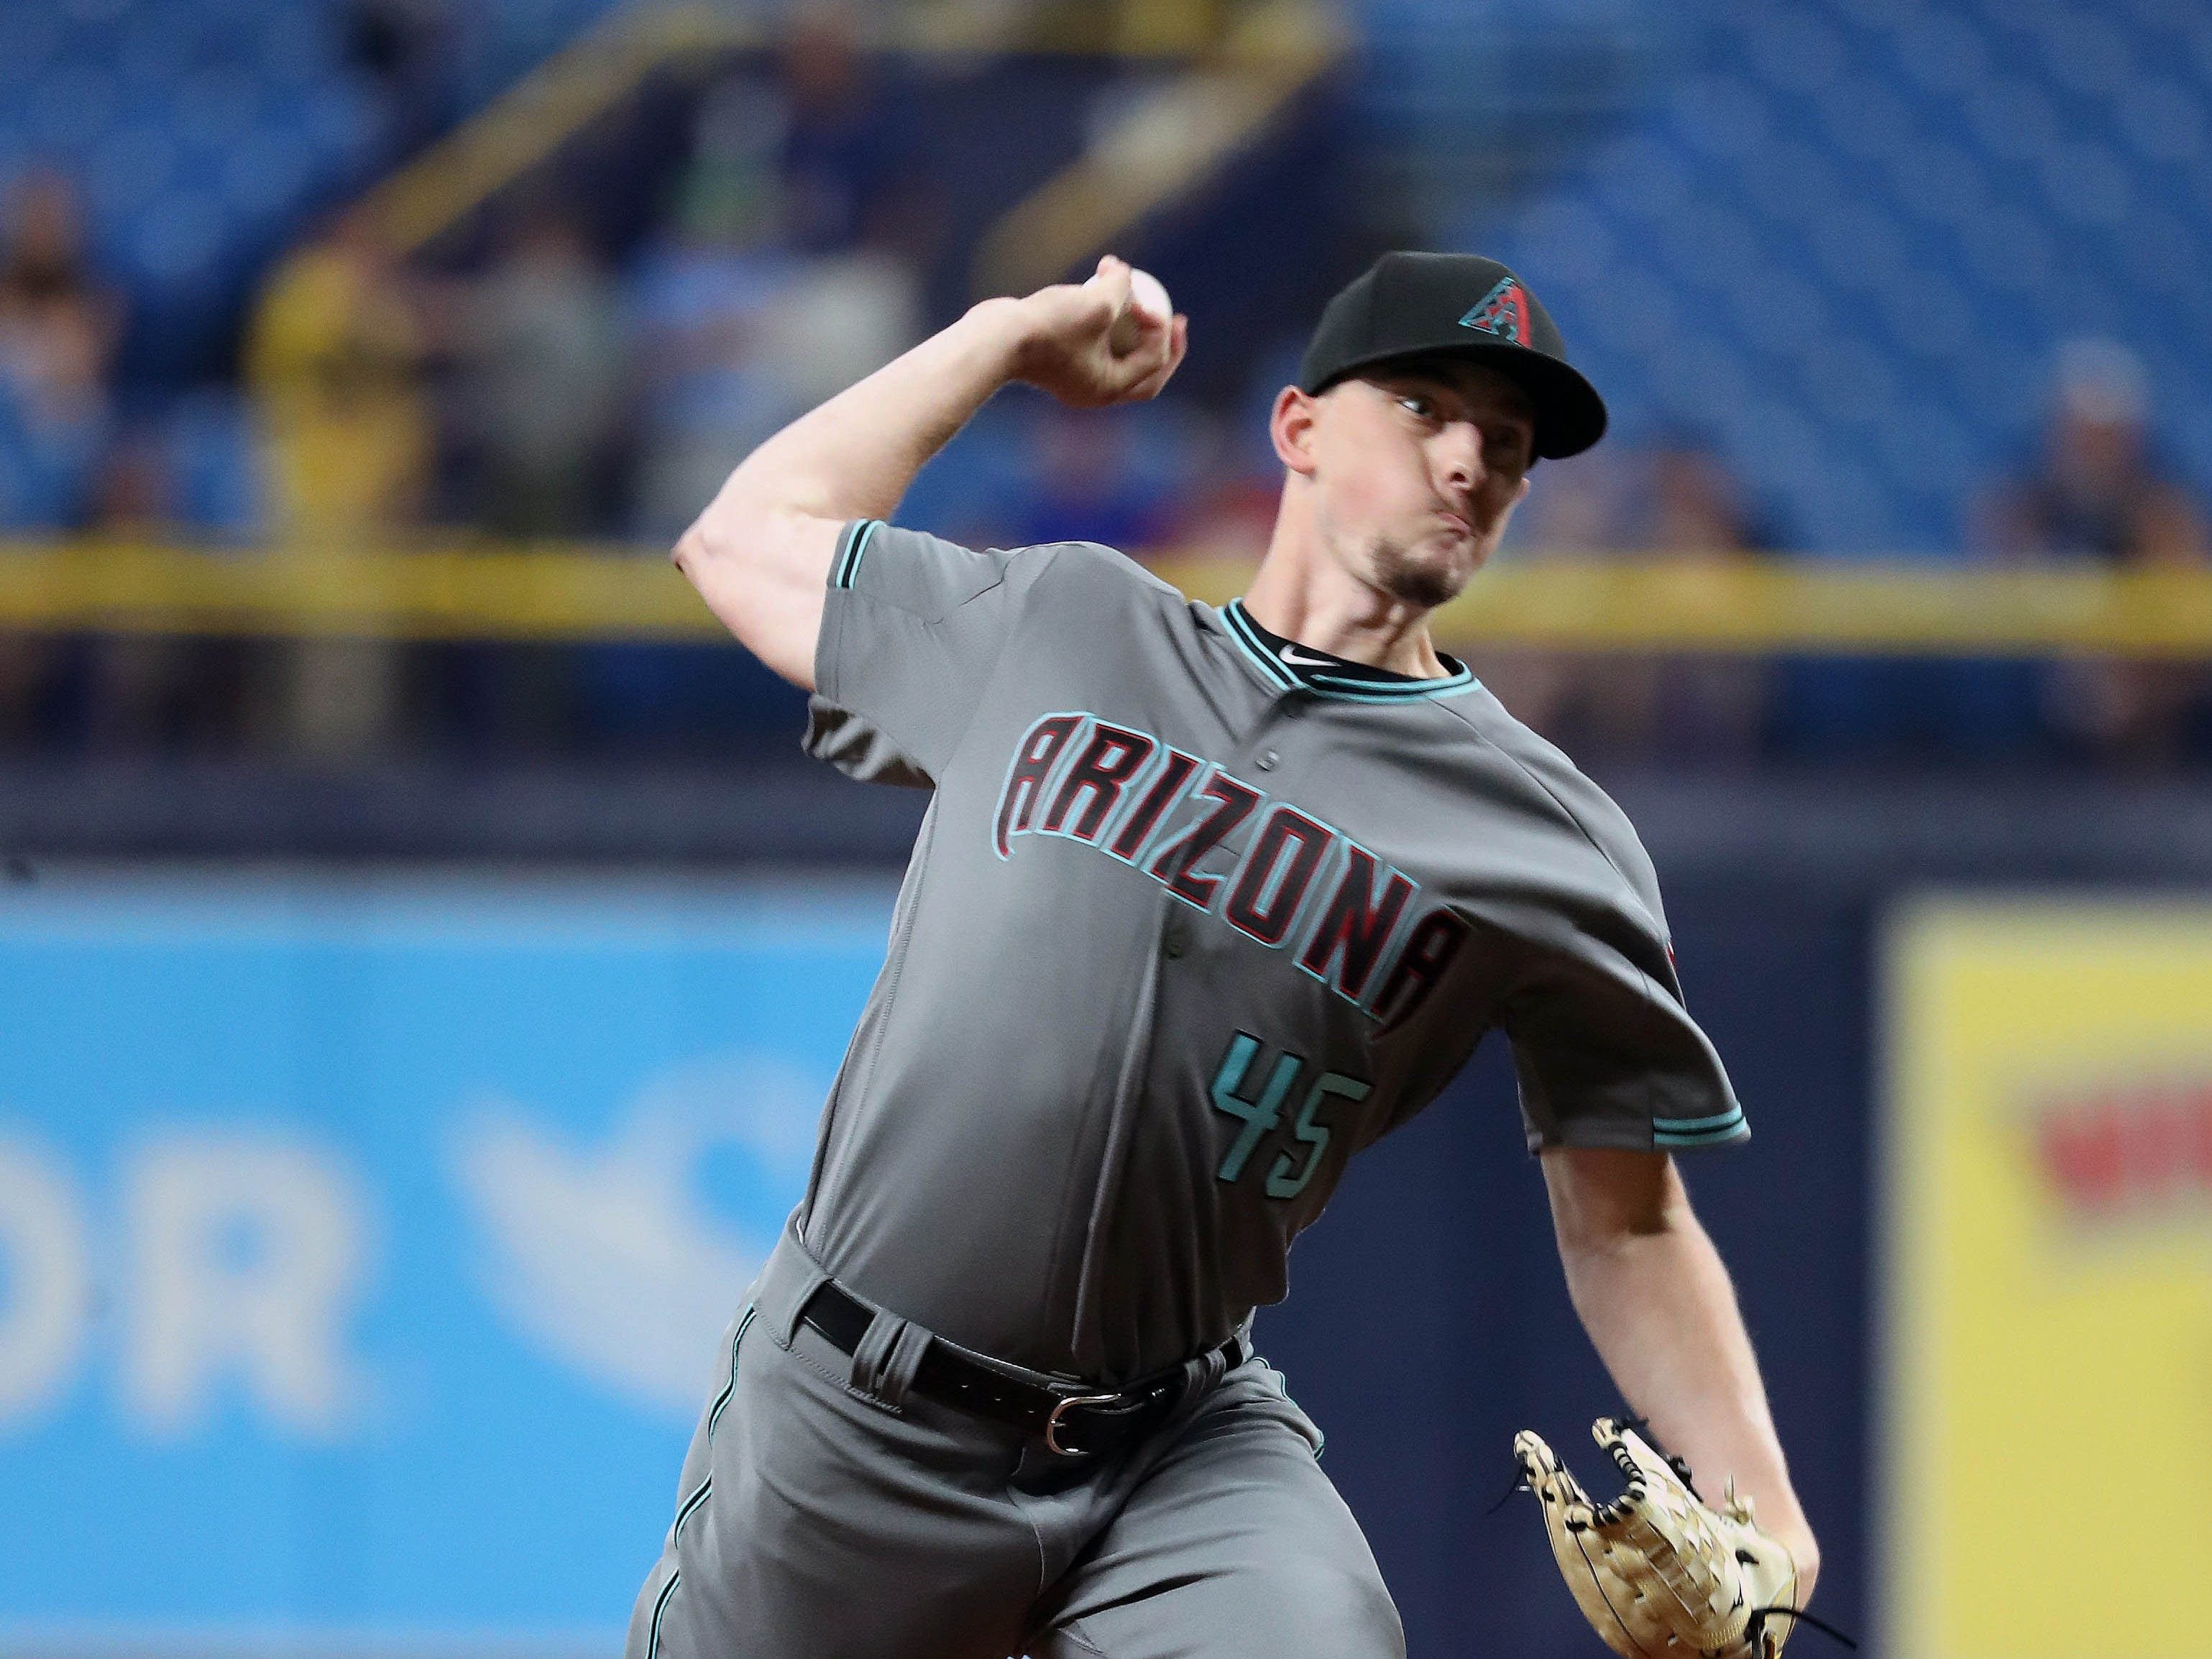 May 7, 2019; St. Petersburg, FL, USA; Arizona Diamondbacks starting pitcher Taylor Clarke (45) throws a pitch during the first inning against the Tampa Bay Rays at Tropicana Field. Mandatory Credit: Kim Klement-USA TODAY Sports